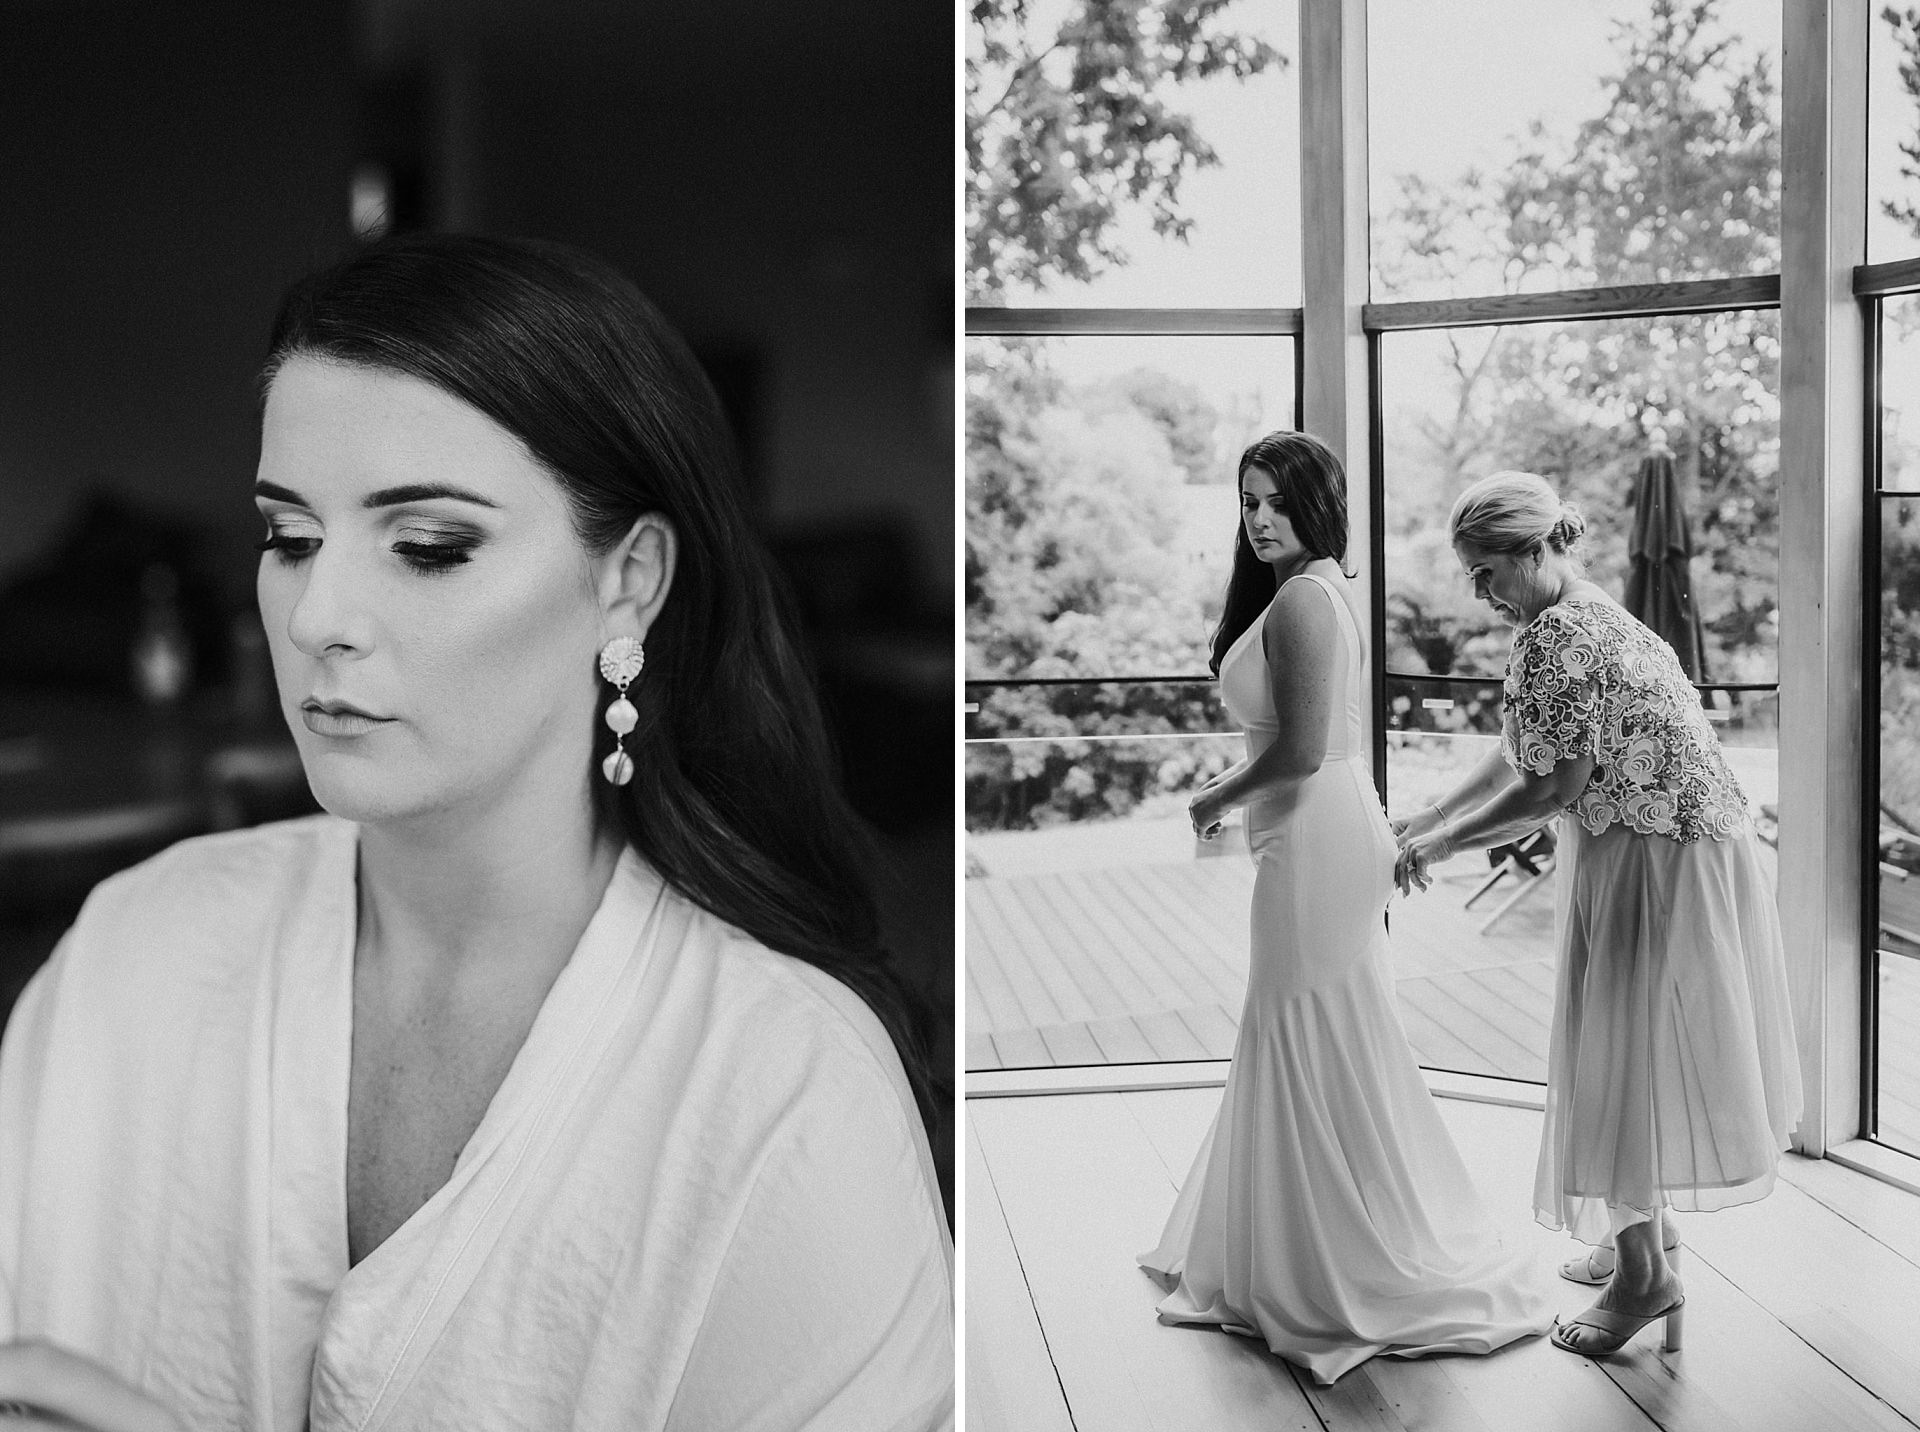 Black and white photos of bride gettting into wedding dress